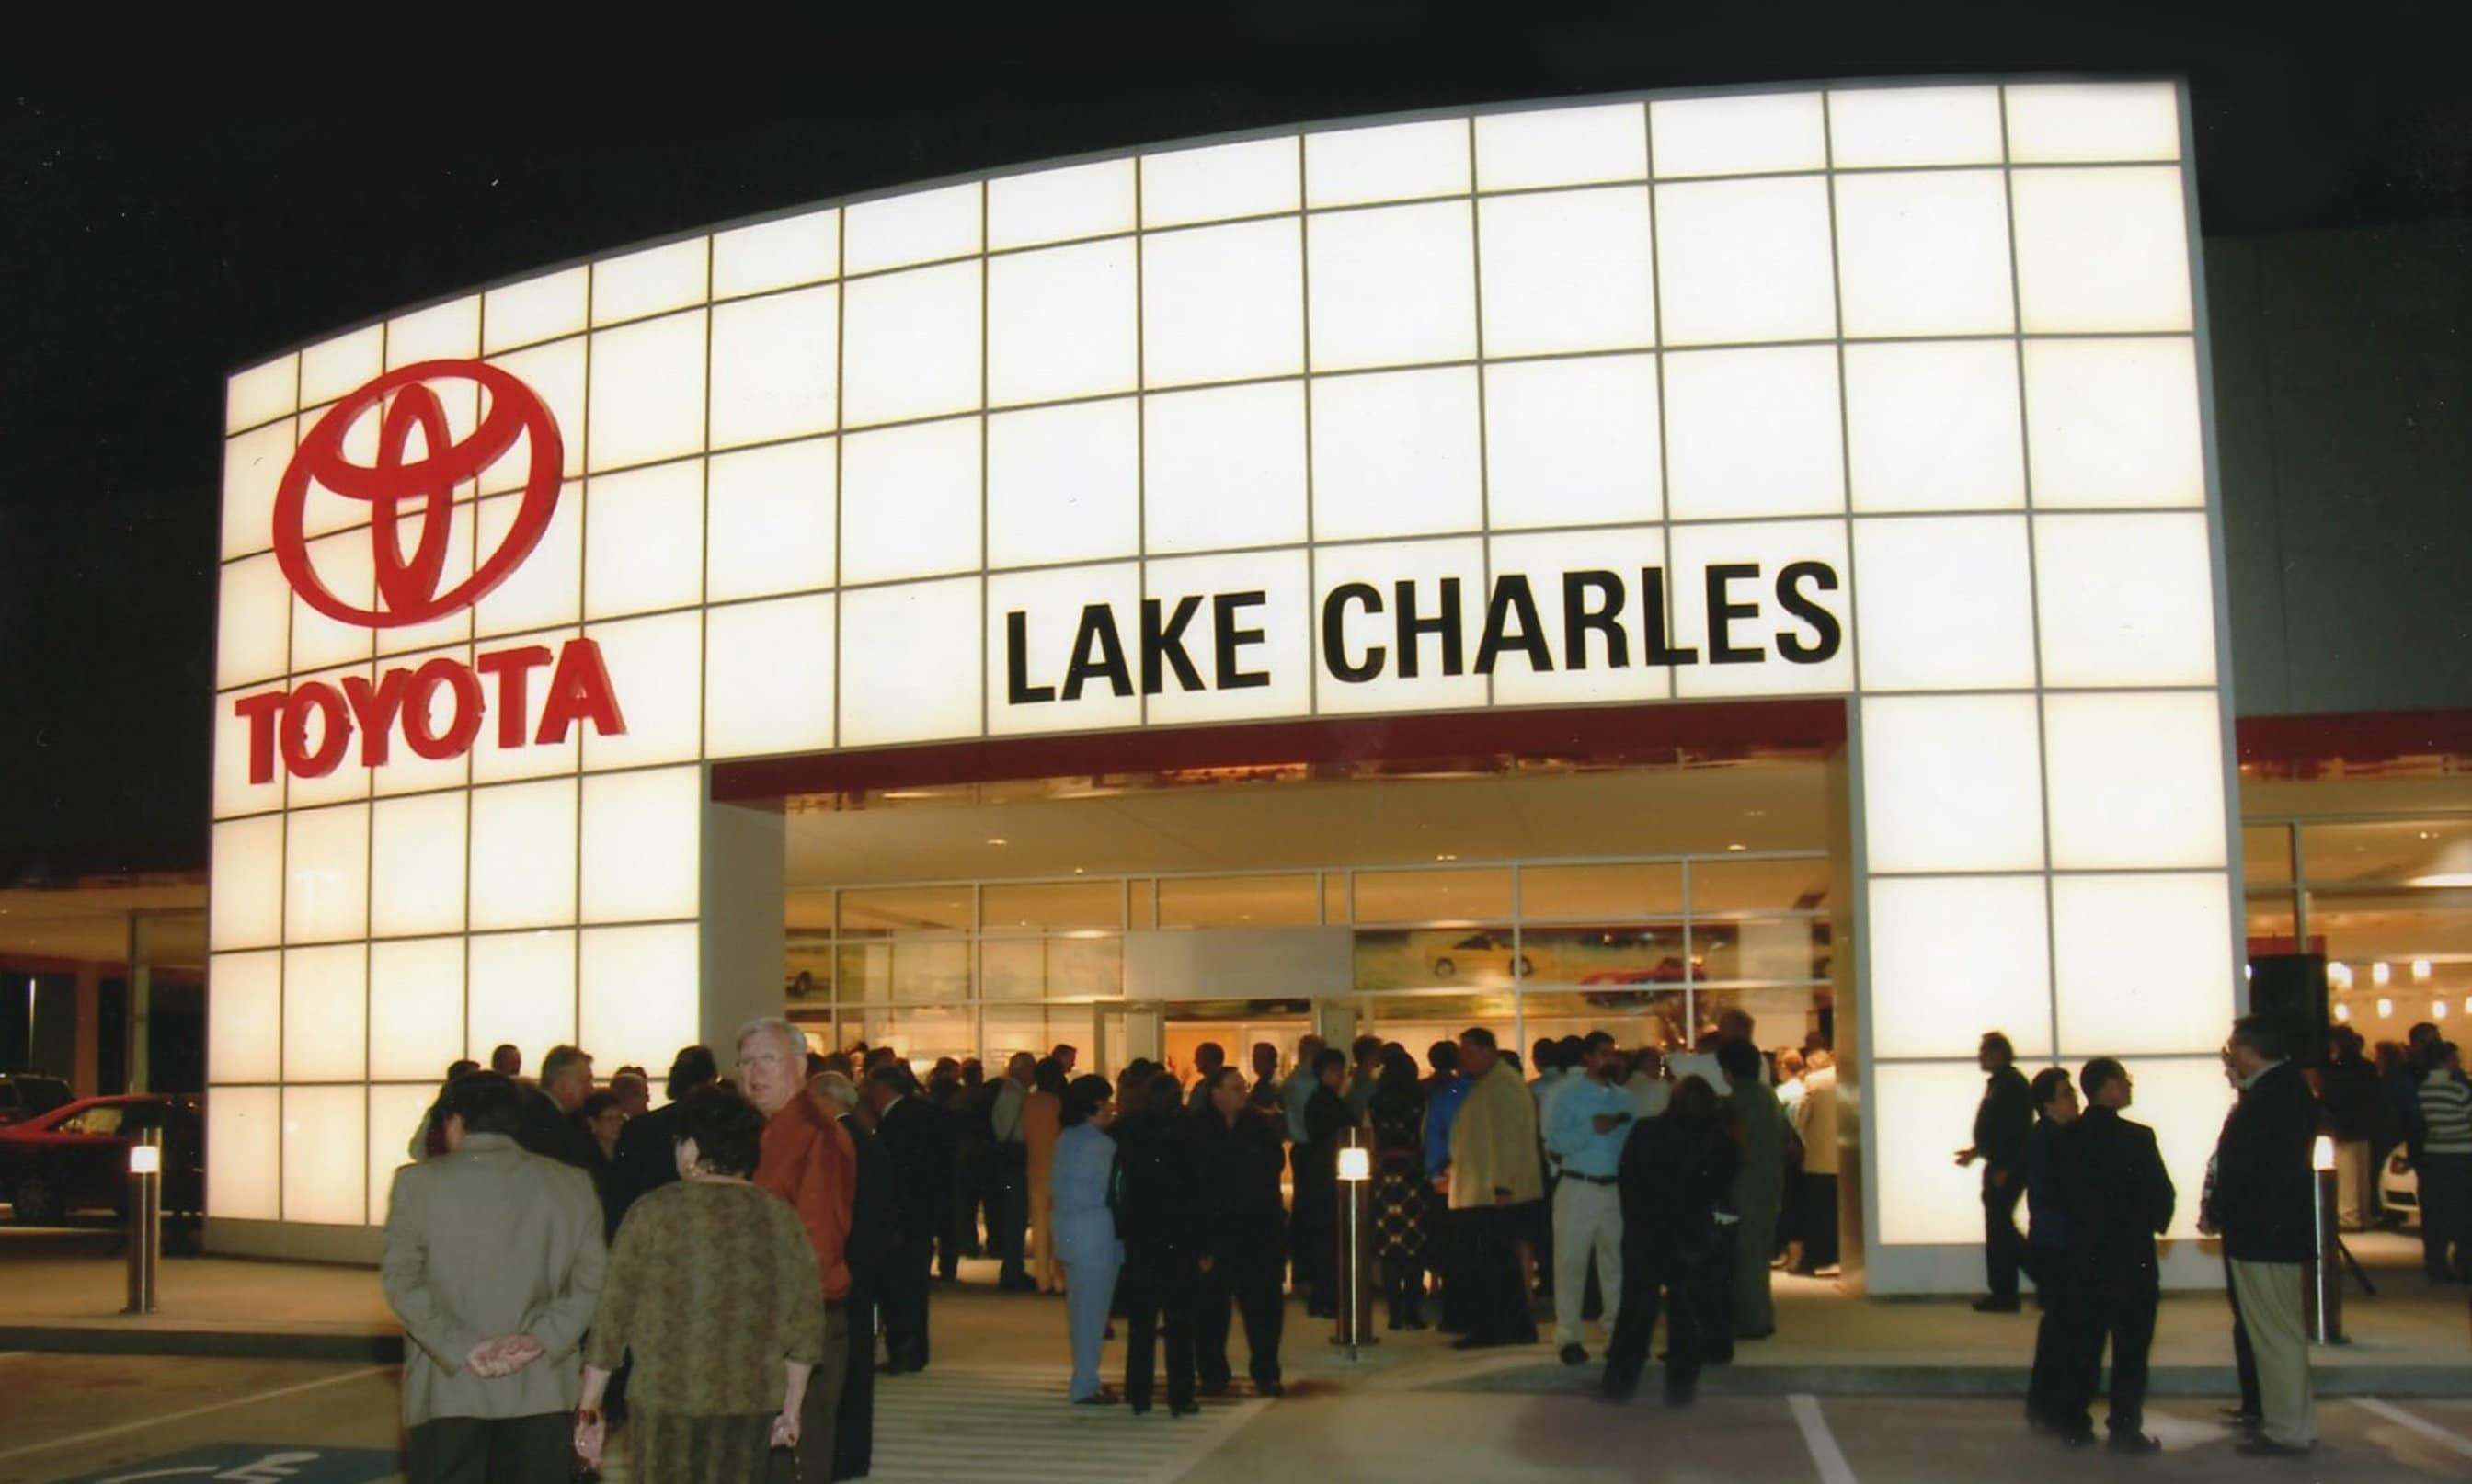 Lake Charles Toyota >> Lake Charles Toyota Toyota Dealership Lake Charles La Near Leesville